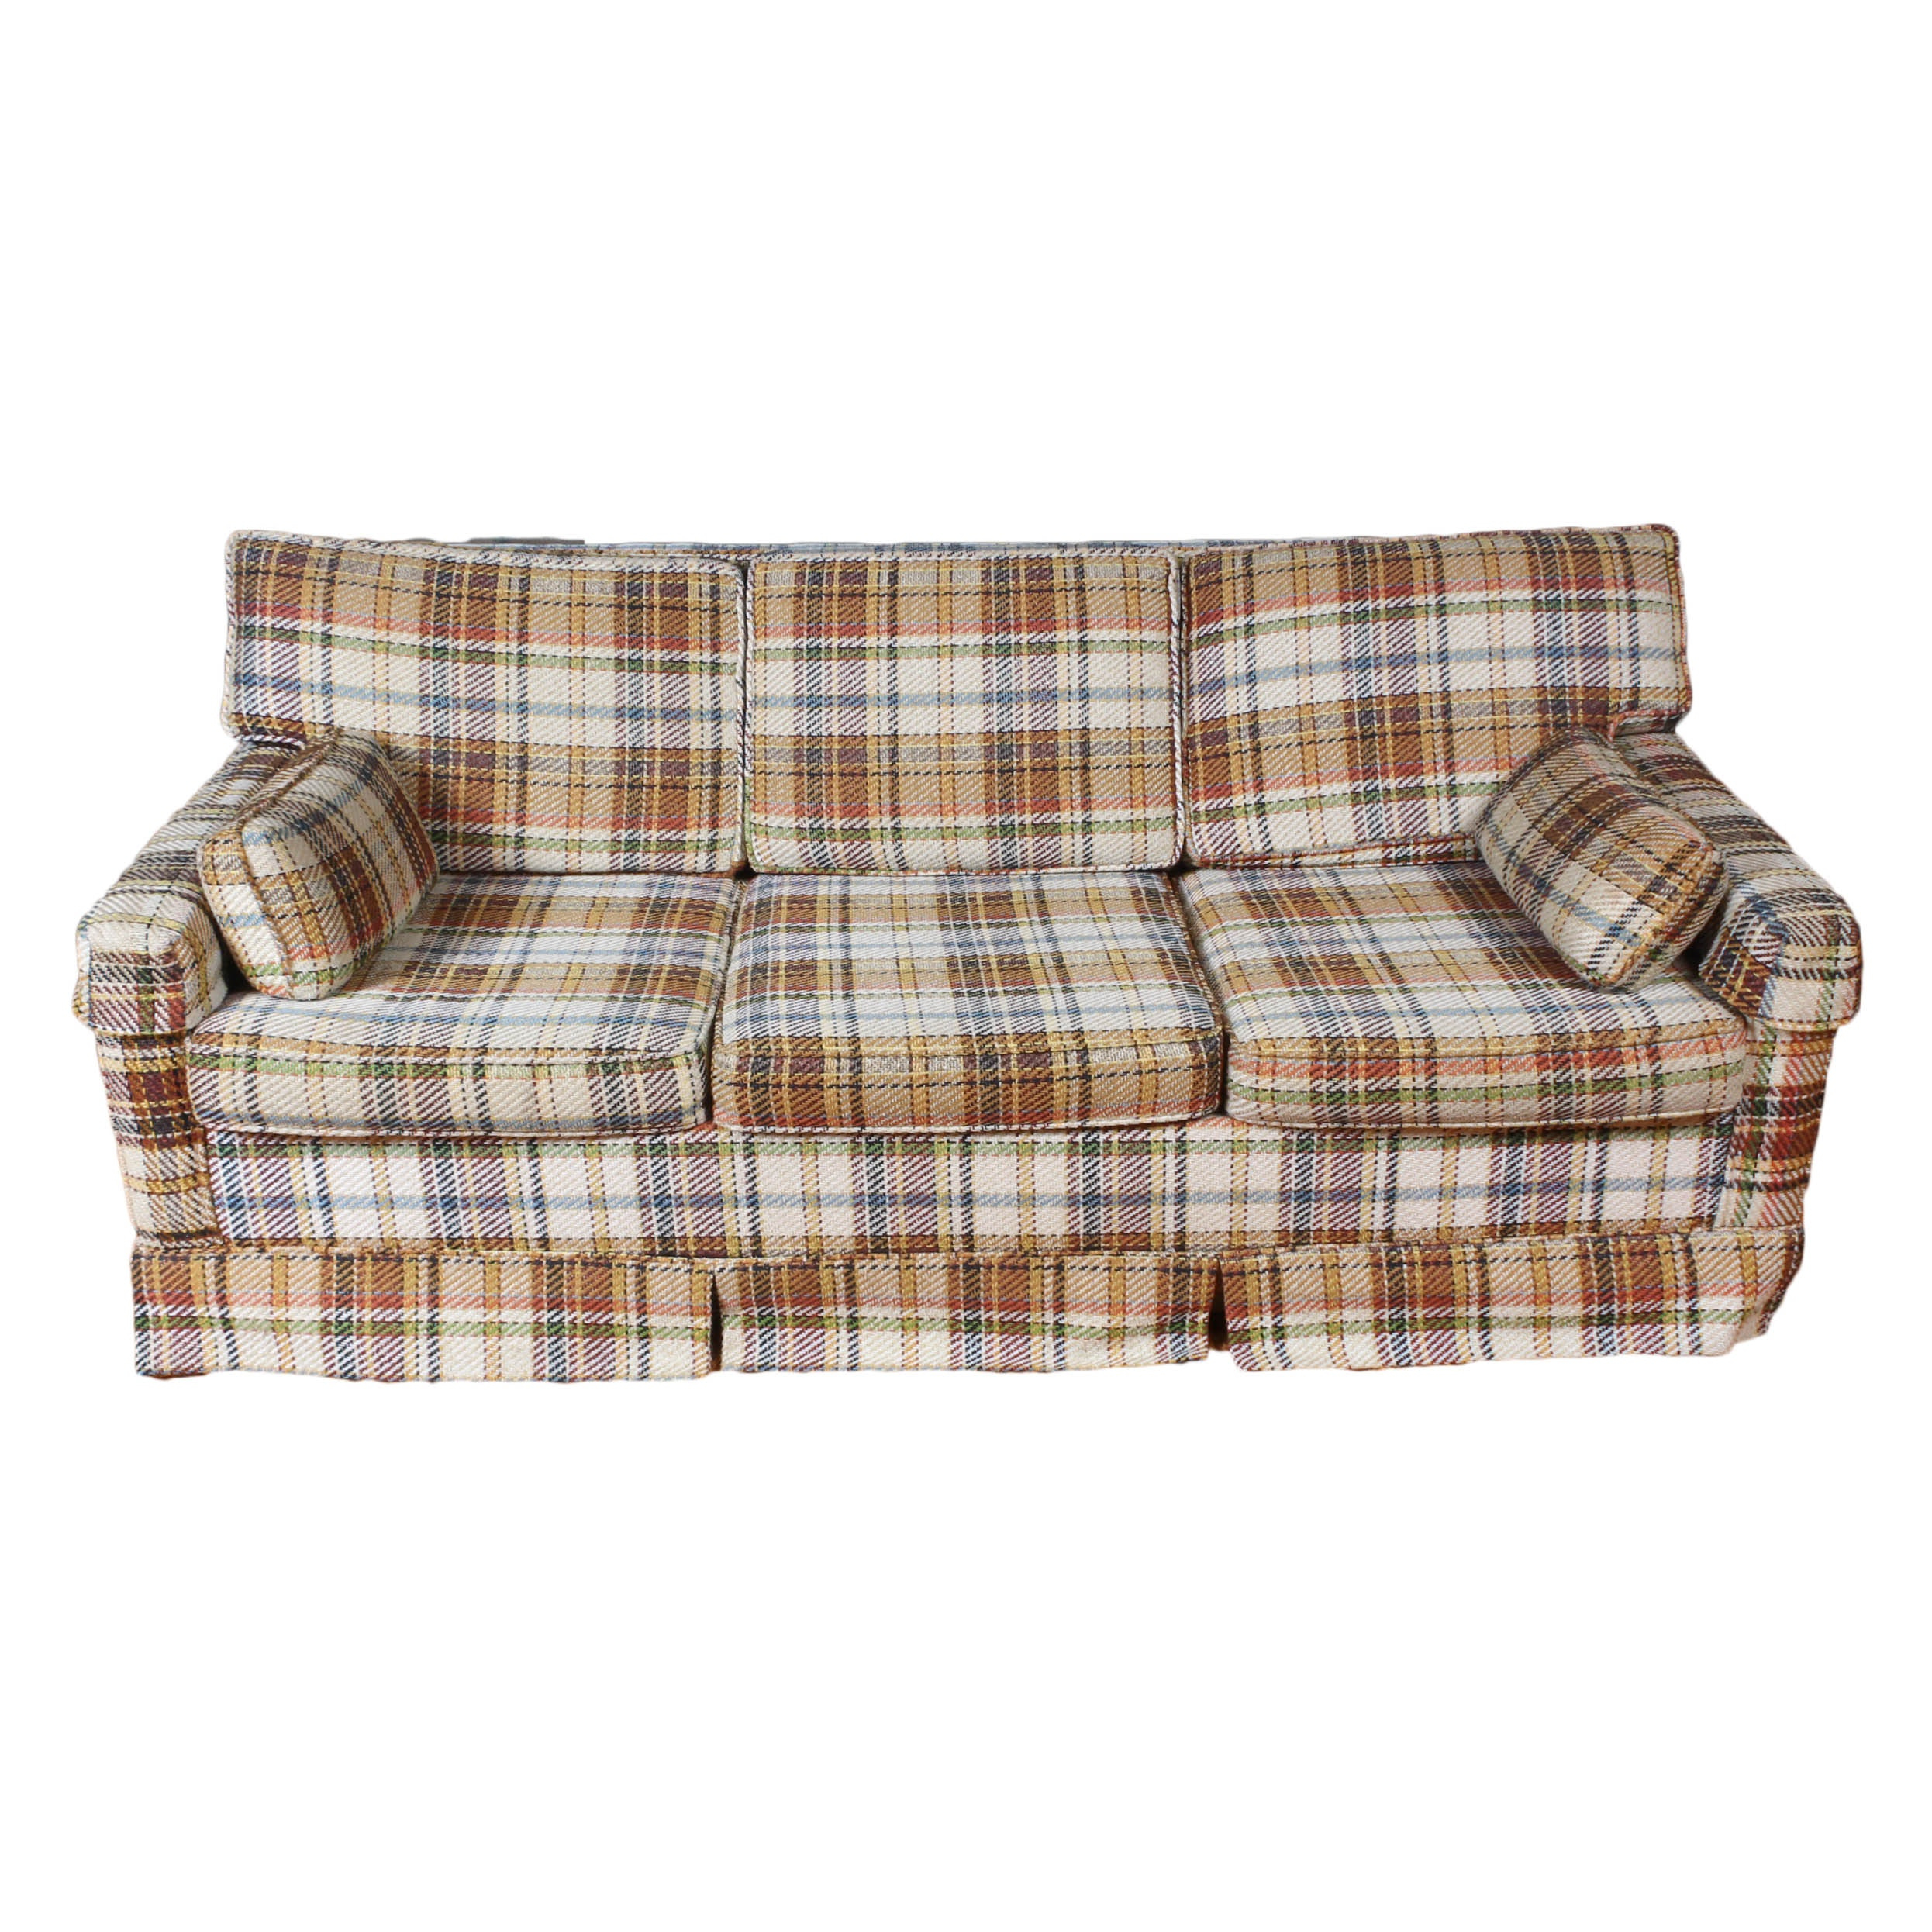 Vintage Sofa with Pull-Out Bed